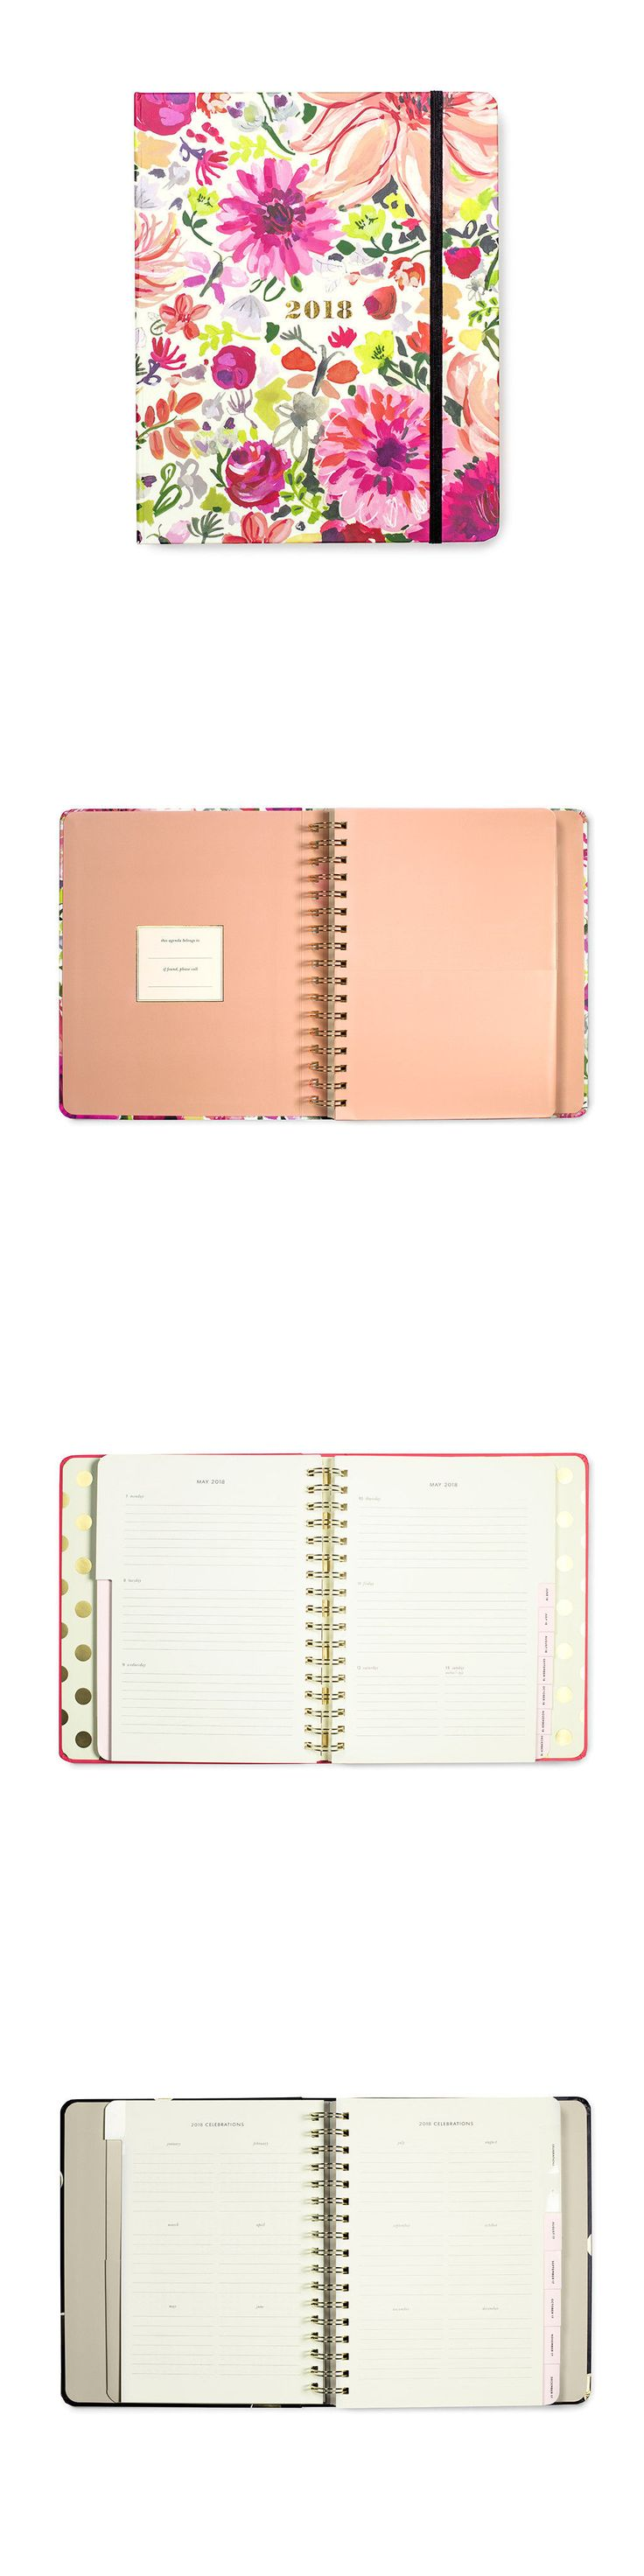 Organizers and Day Planners 15735: Kate Spade - 2017- 2018 Agenda - Planner - Dahlia - Large -> BUY IT NOW ONLY: $36 on eBay!